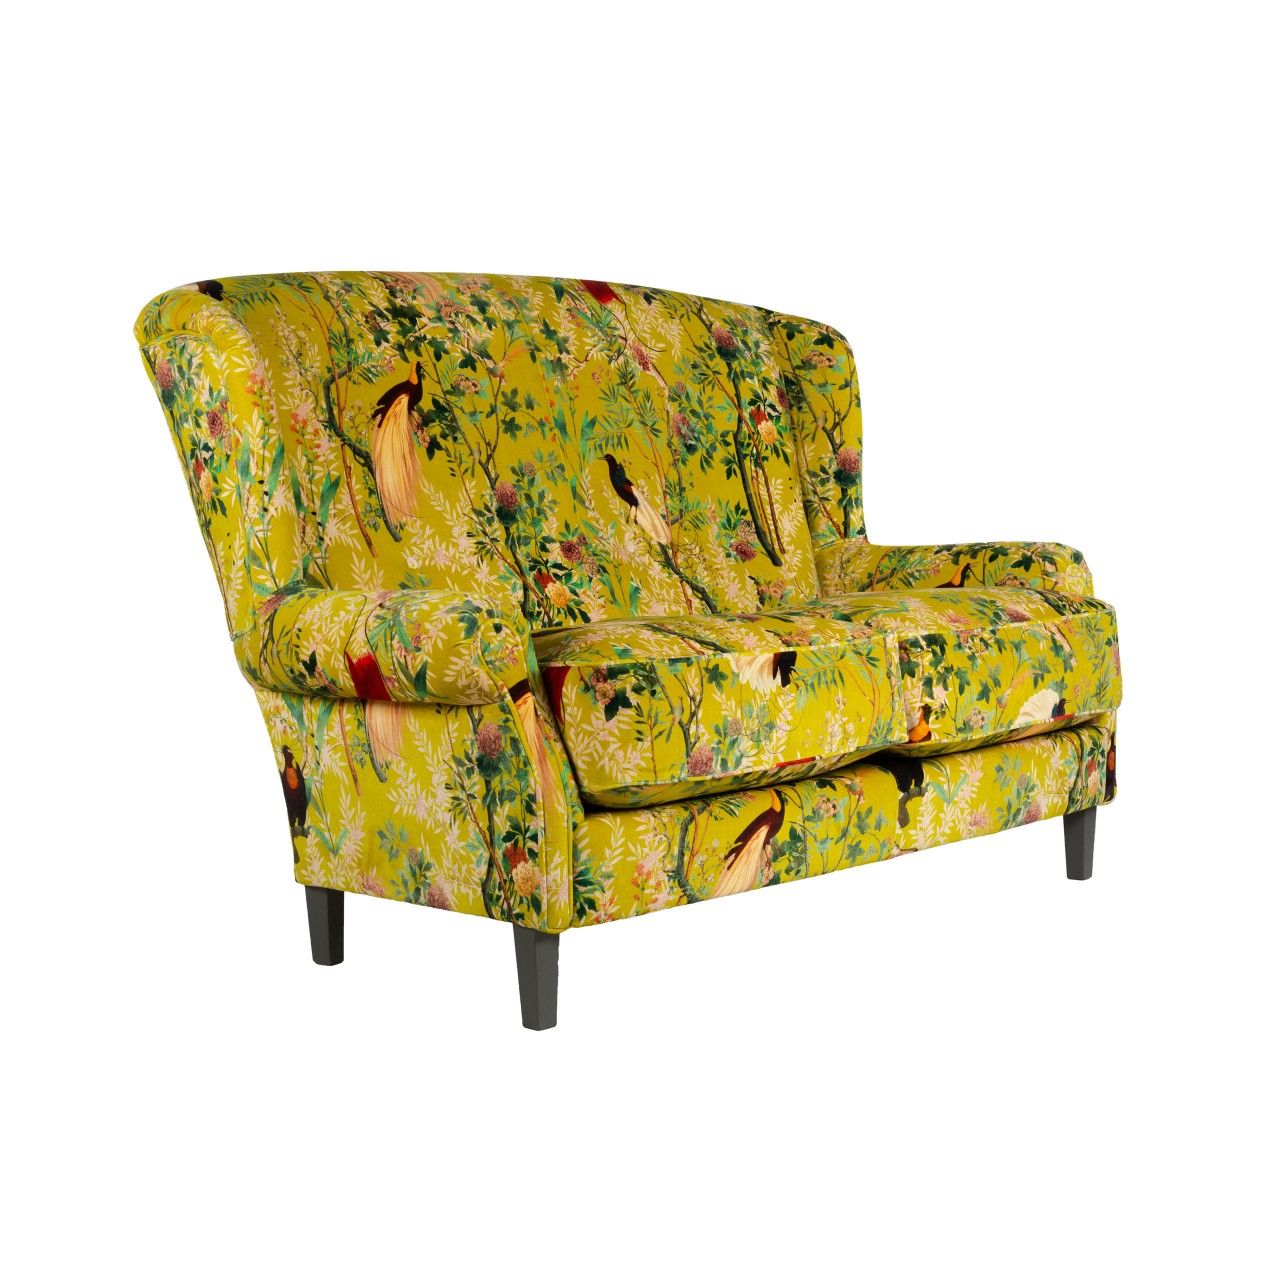 ABIGAIL Sofa - ROYAL GARDEN Green Velvet